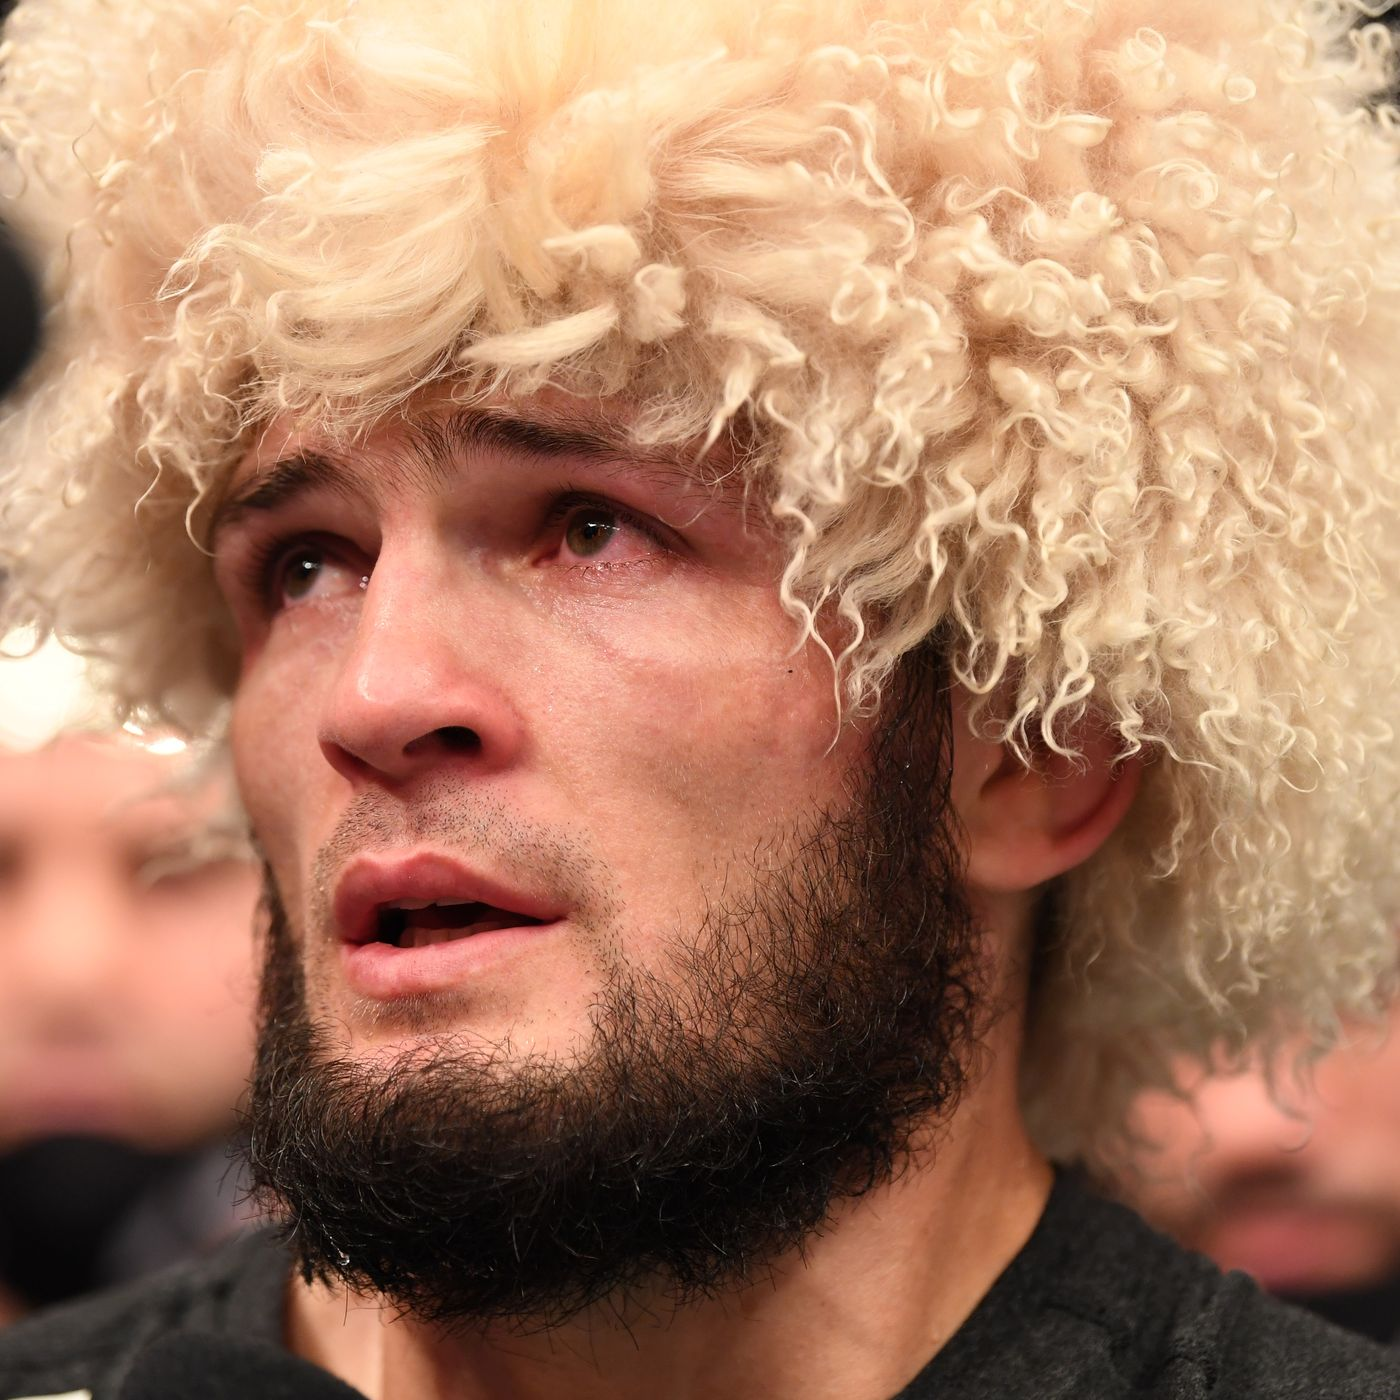 UFC 254, The Morning After Khabib Nurmagomedov sprints to the finish - Jaime Bonetti Zeller